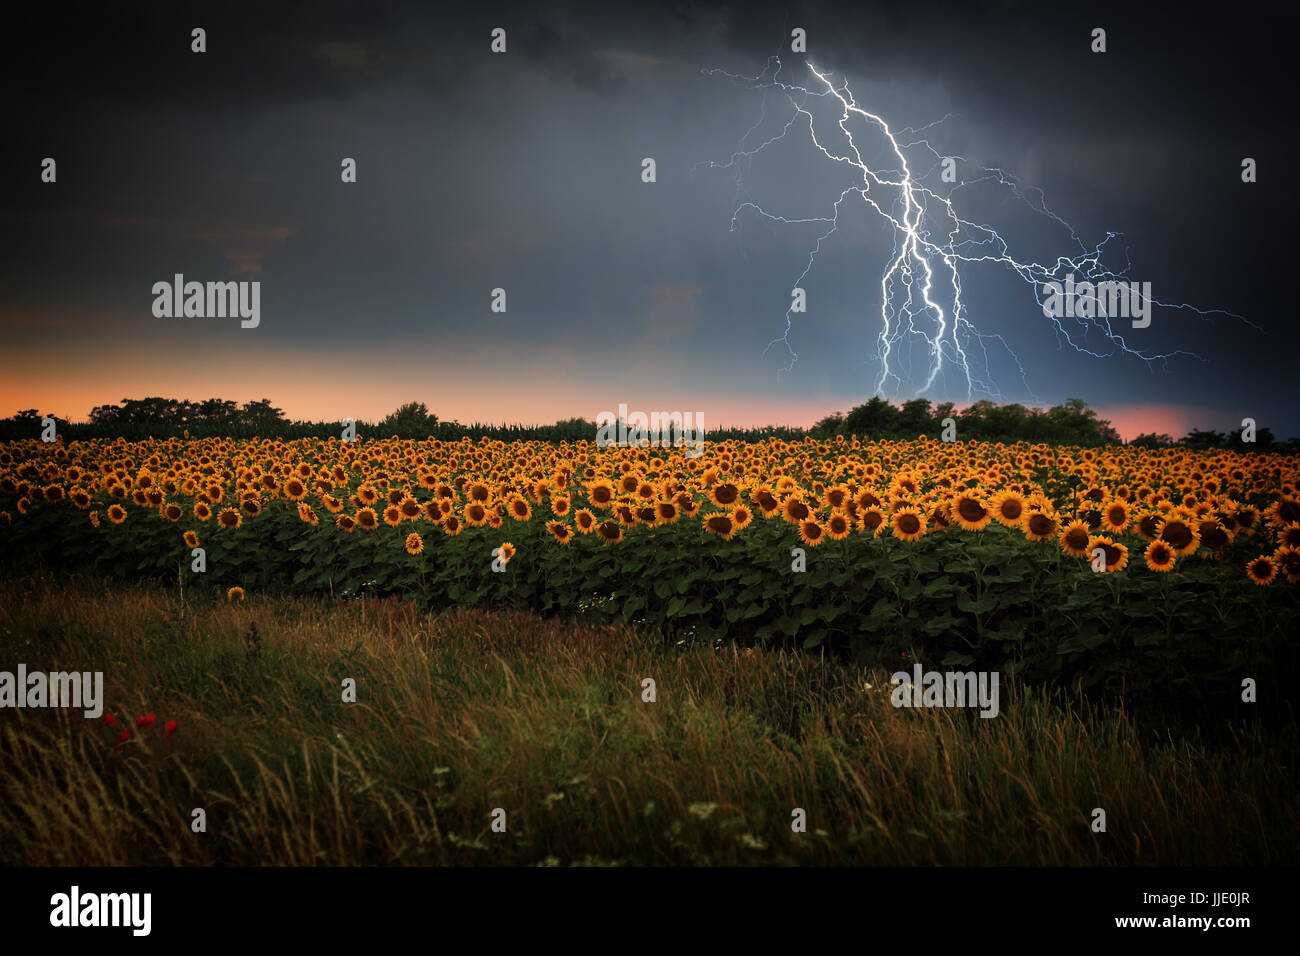 Lightning storm over sunflower field Stock Photo